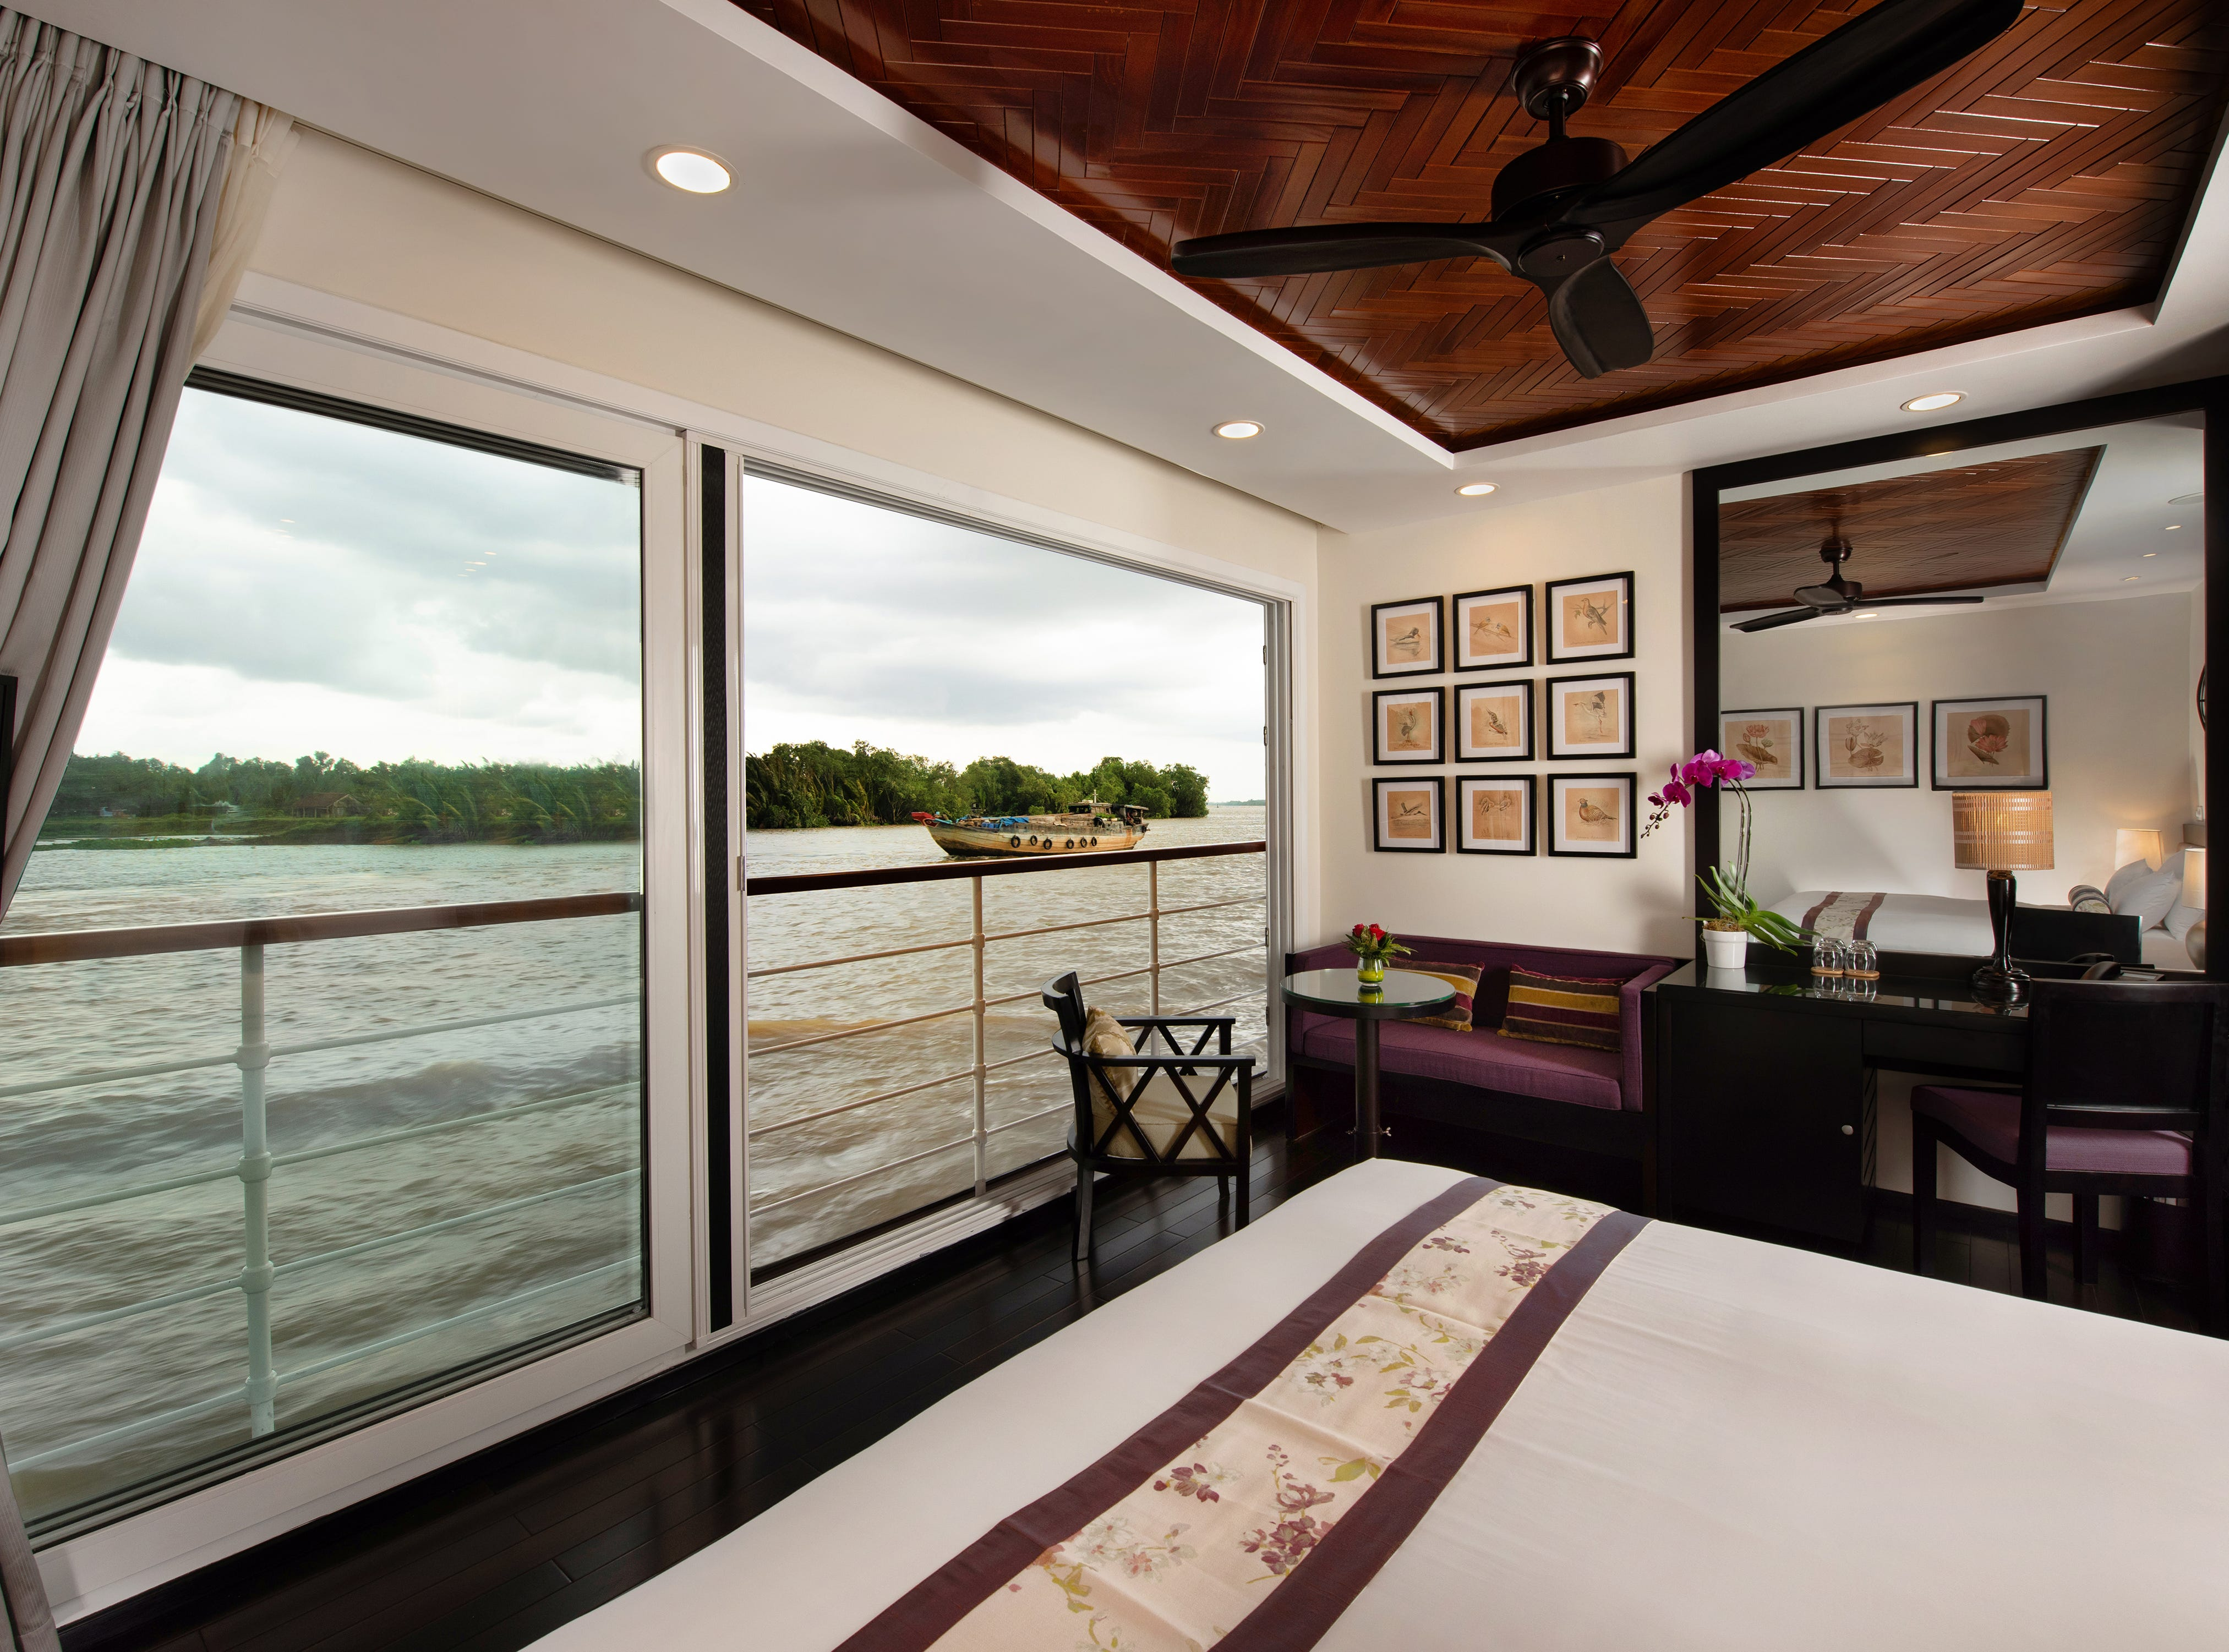 Avalon Saigon is home to some of the most stylish and contemporary cruise cabins on the Mekong River. All of the 18 rooms on the ship are suites measuring a spacious 245 square feet.